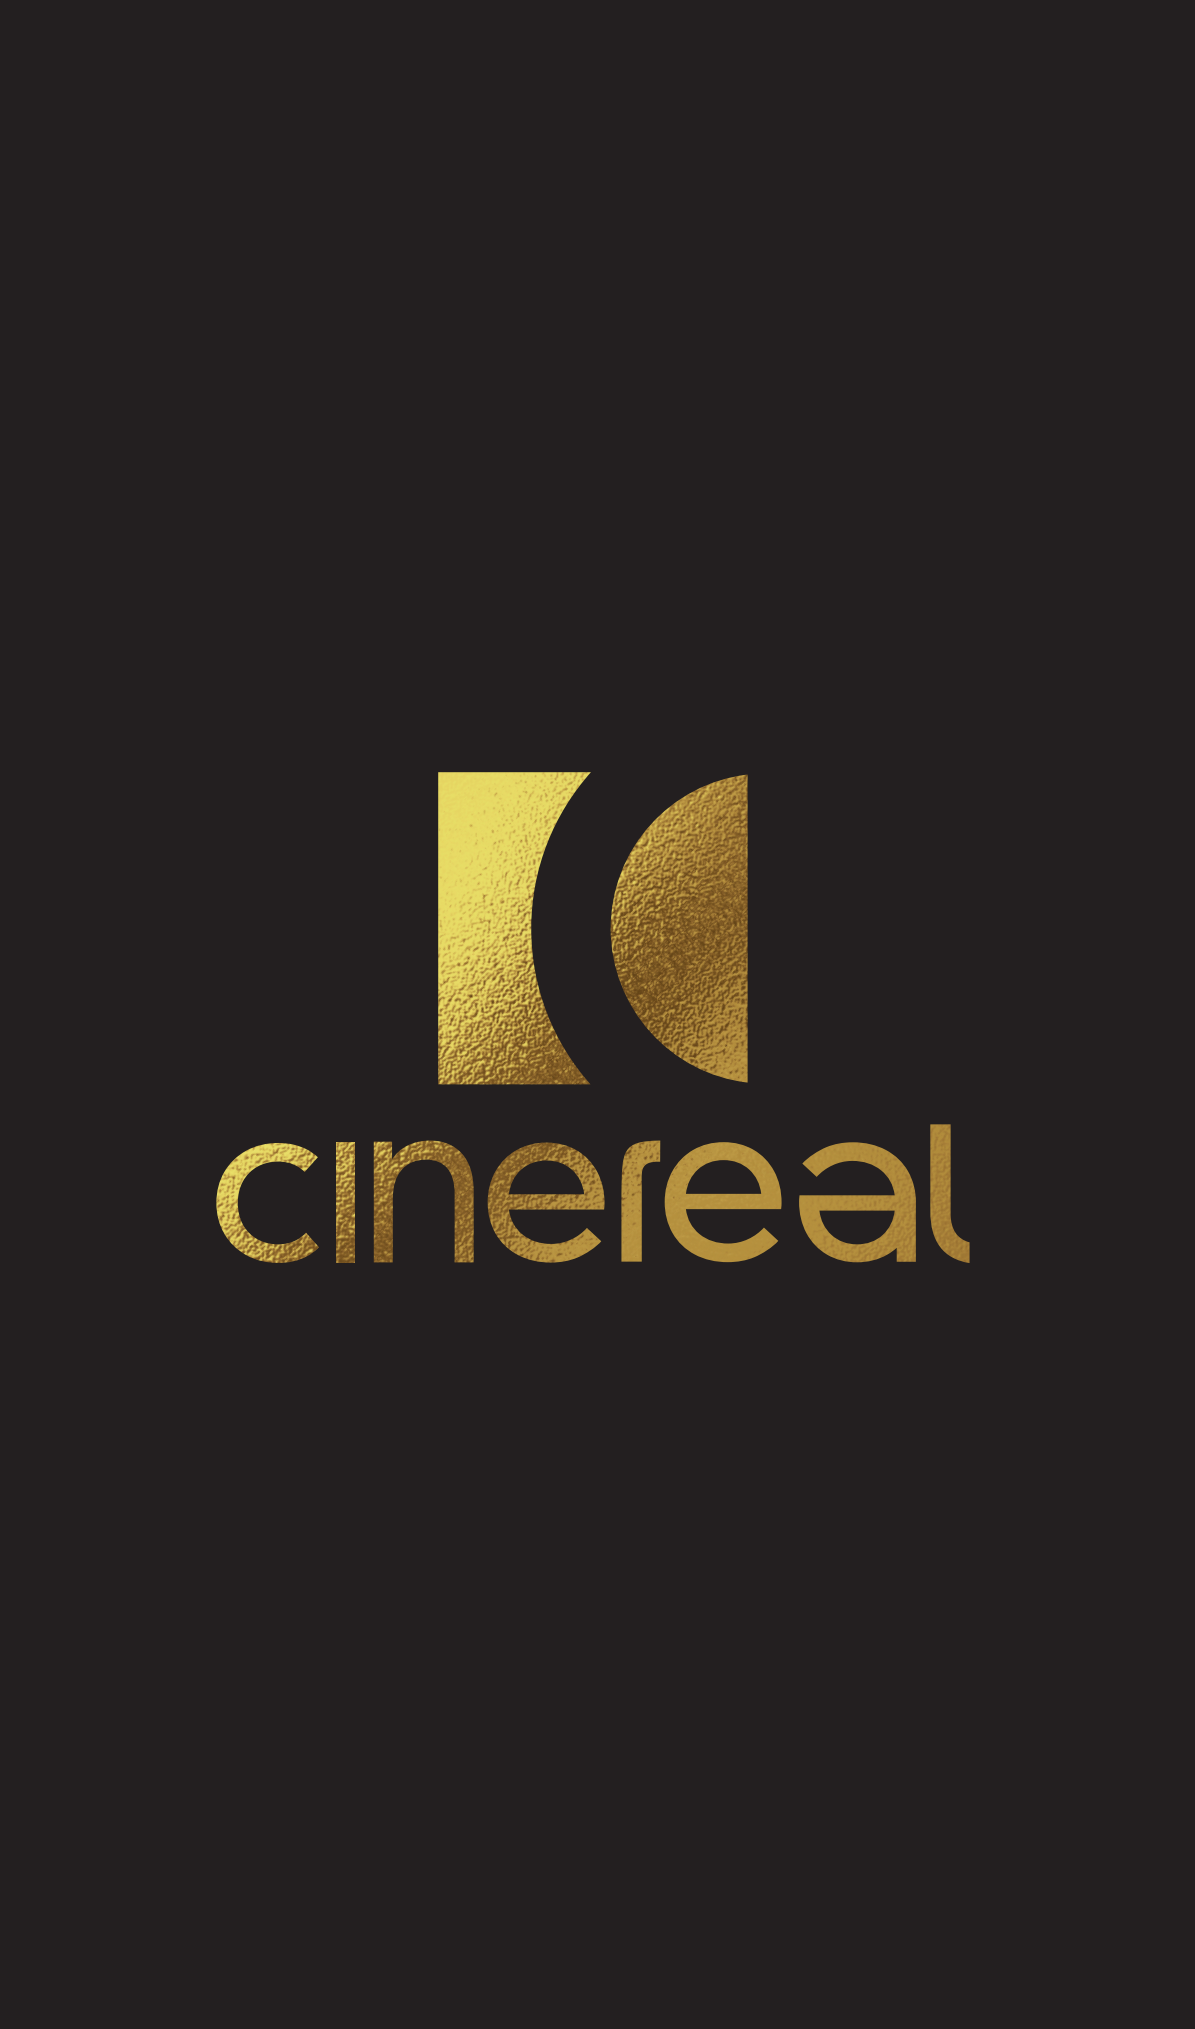 Business card for Cinereal